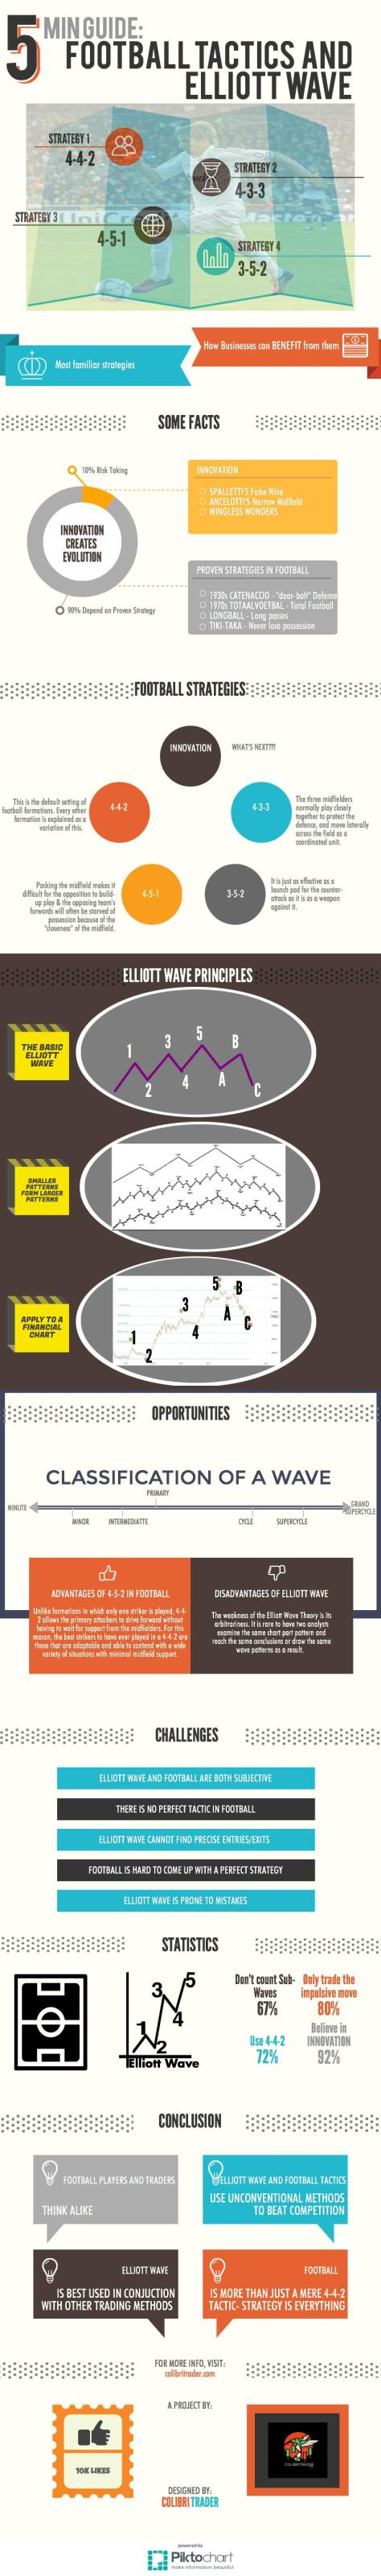 How Is Football Tactics Similar To Elliott Wave in Trading (Infographic)